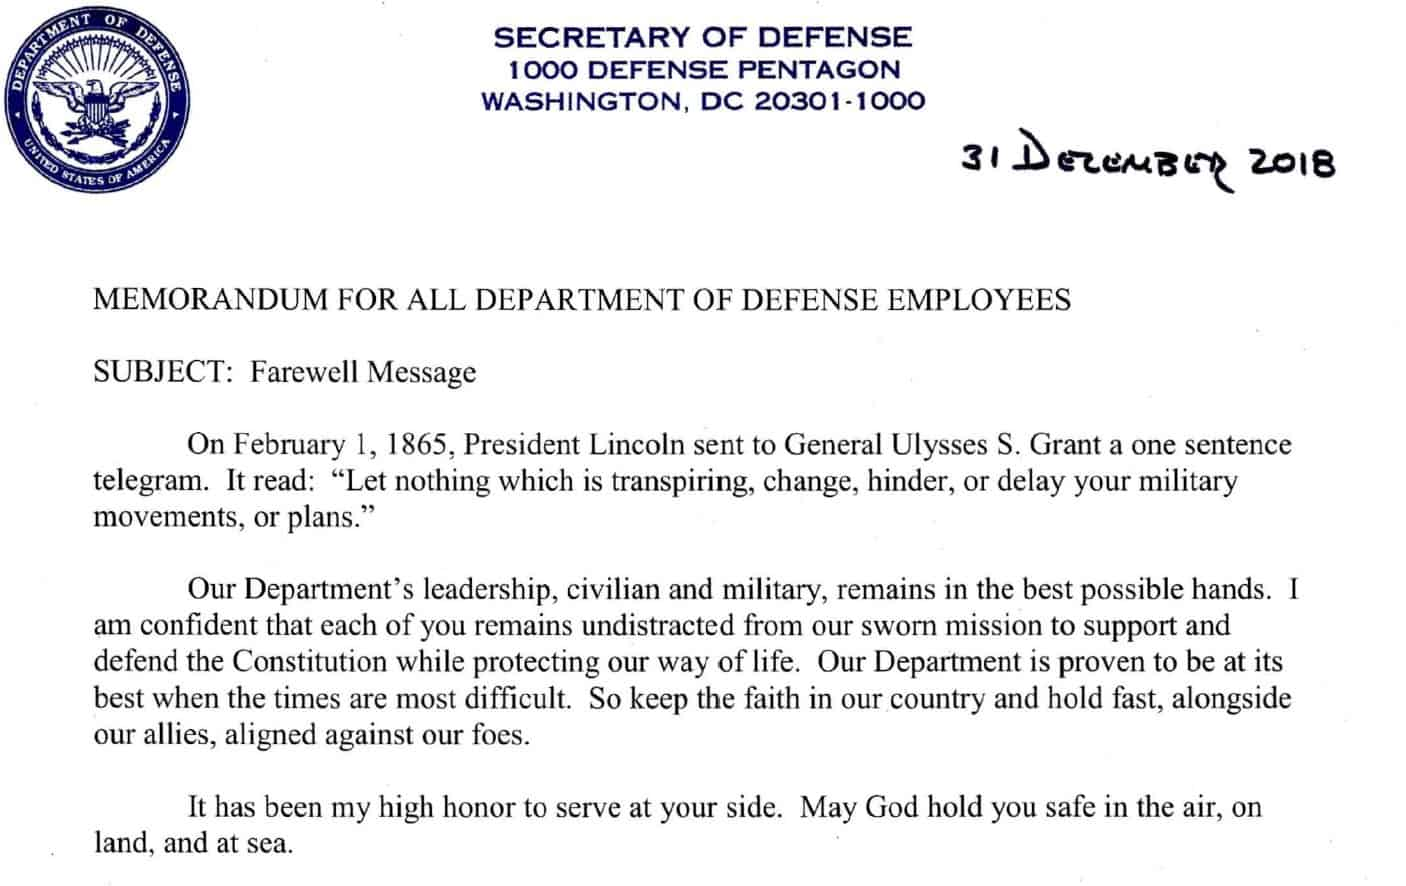 Here's The Goodbye Letter James Mattis Penned to DOD Employees